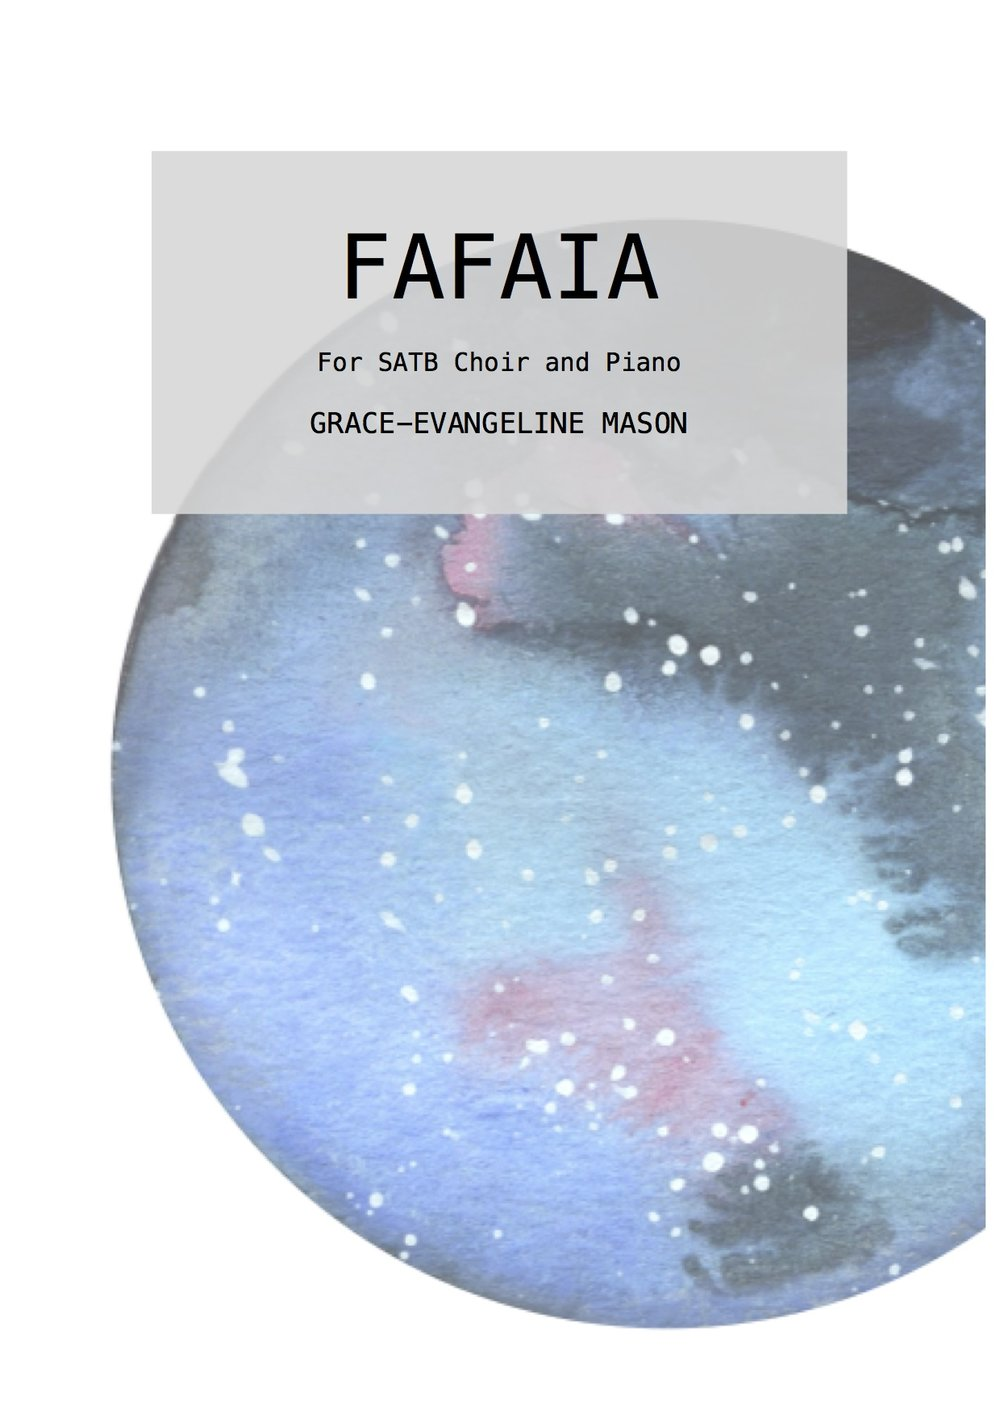 'FAFAIA' (2018) - For Choir and PianoDuration: 3'Written for the LSO Community Choir through the LSO Discovery Panufnik Composers Scheme, generously supported by Helen Hamlyn and the Helen Hamlyn Trust. First Performed at LSO St Luke's, London, 16th November 2018.'Fafaia' (2018) for choir and piano is a setting of the poem of the same name by the World War I poet, Rupert Brooke. Known for his somewhat idealistic portrayals of World War I, Brooke's poem is simple and reflective, which he wrote when he was in Saanapu in November 1913. It can be interpreted to be about shared experiences, however fleeting, befitting to both war comrades as well as wider human relationships. ©G.E.M.2018 ©Cover Image: 'Fafaia' Painting by Grace-Evangeline Mason 2018